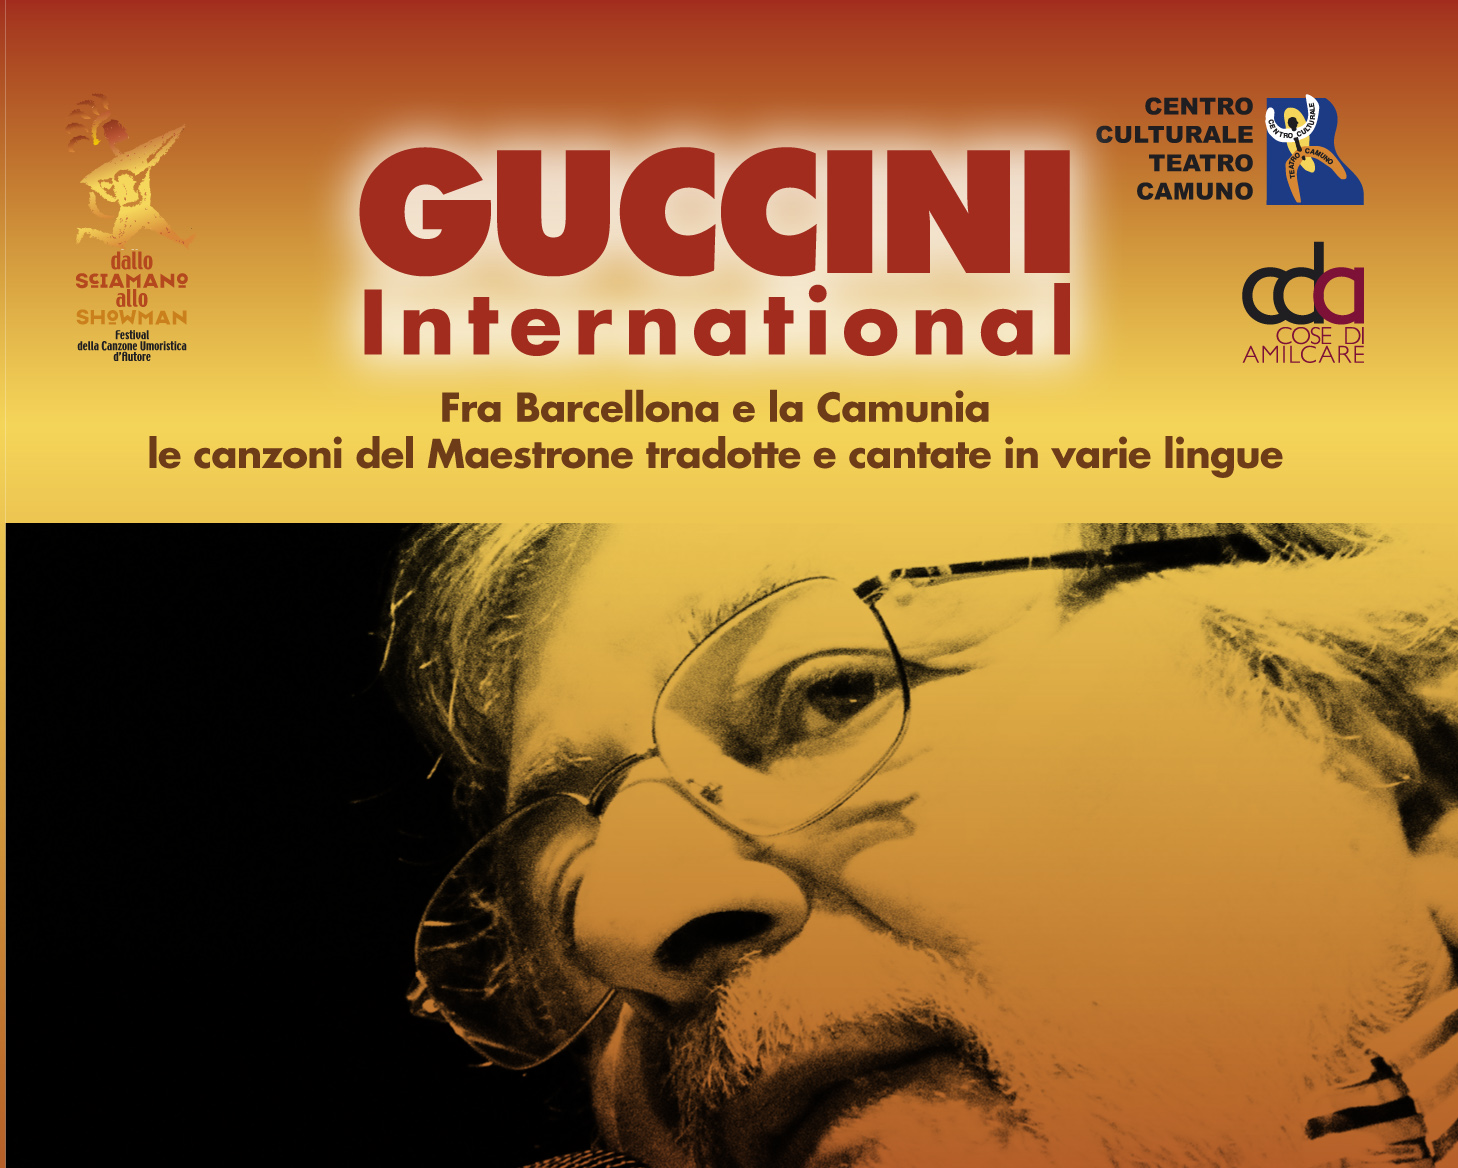 Guccini International (CD+DVD)